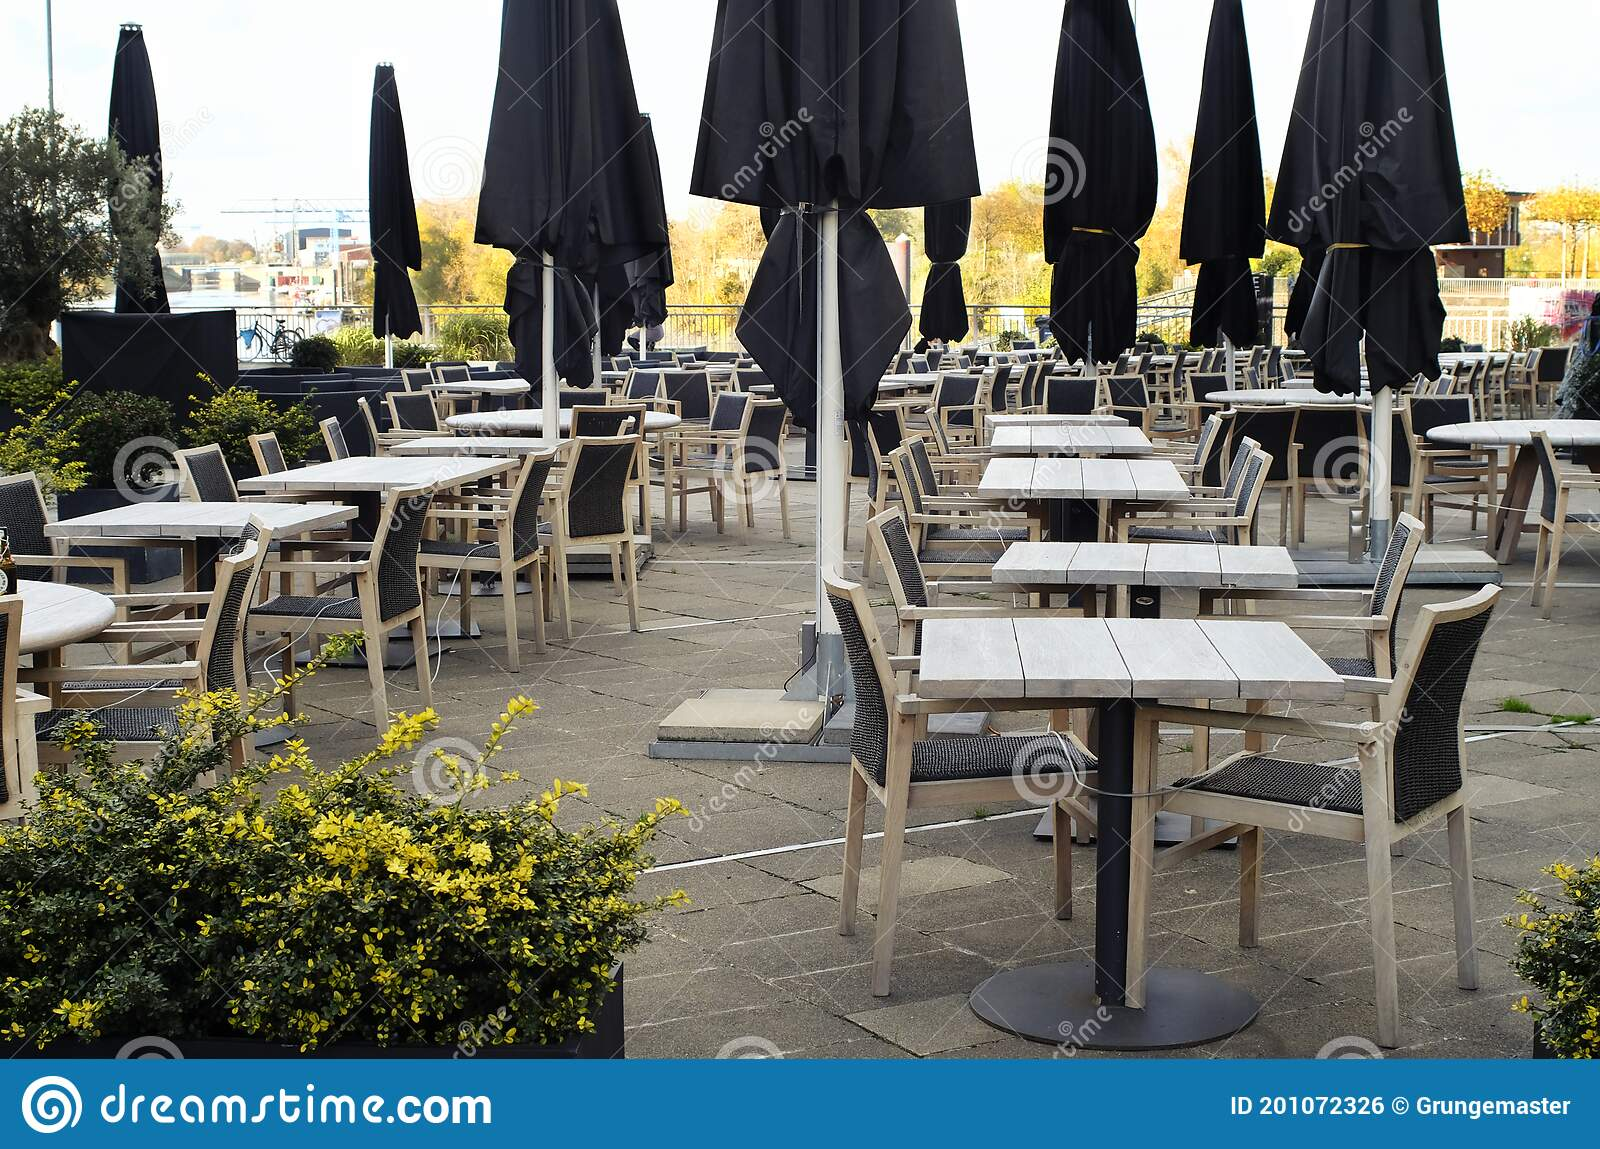 Gastronomy Lockdown Closed Restaurant Outdoor Terrace In Germany Due To Corona Epidemic Chairs And Tables No Guests Symbol Stock Photo Image Of Epidemic Food 201072326